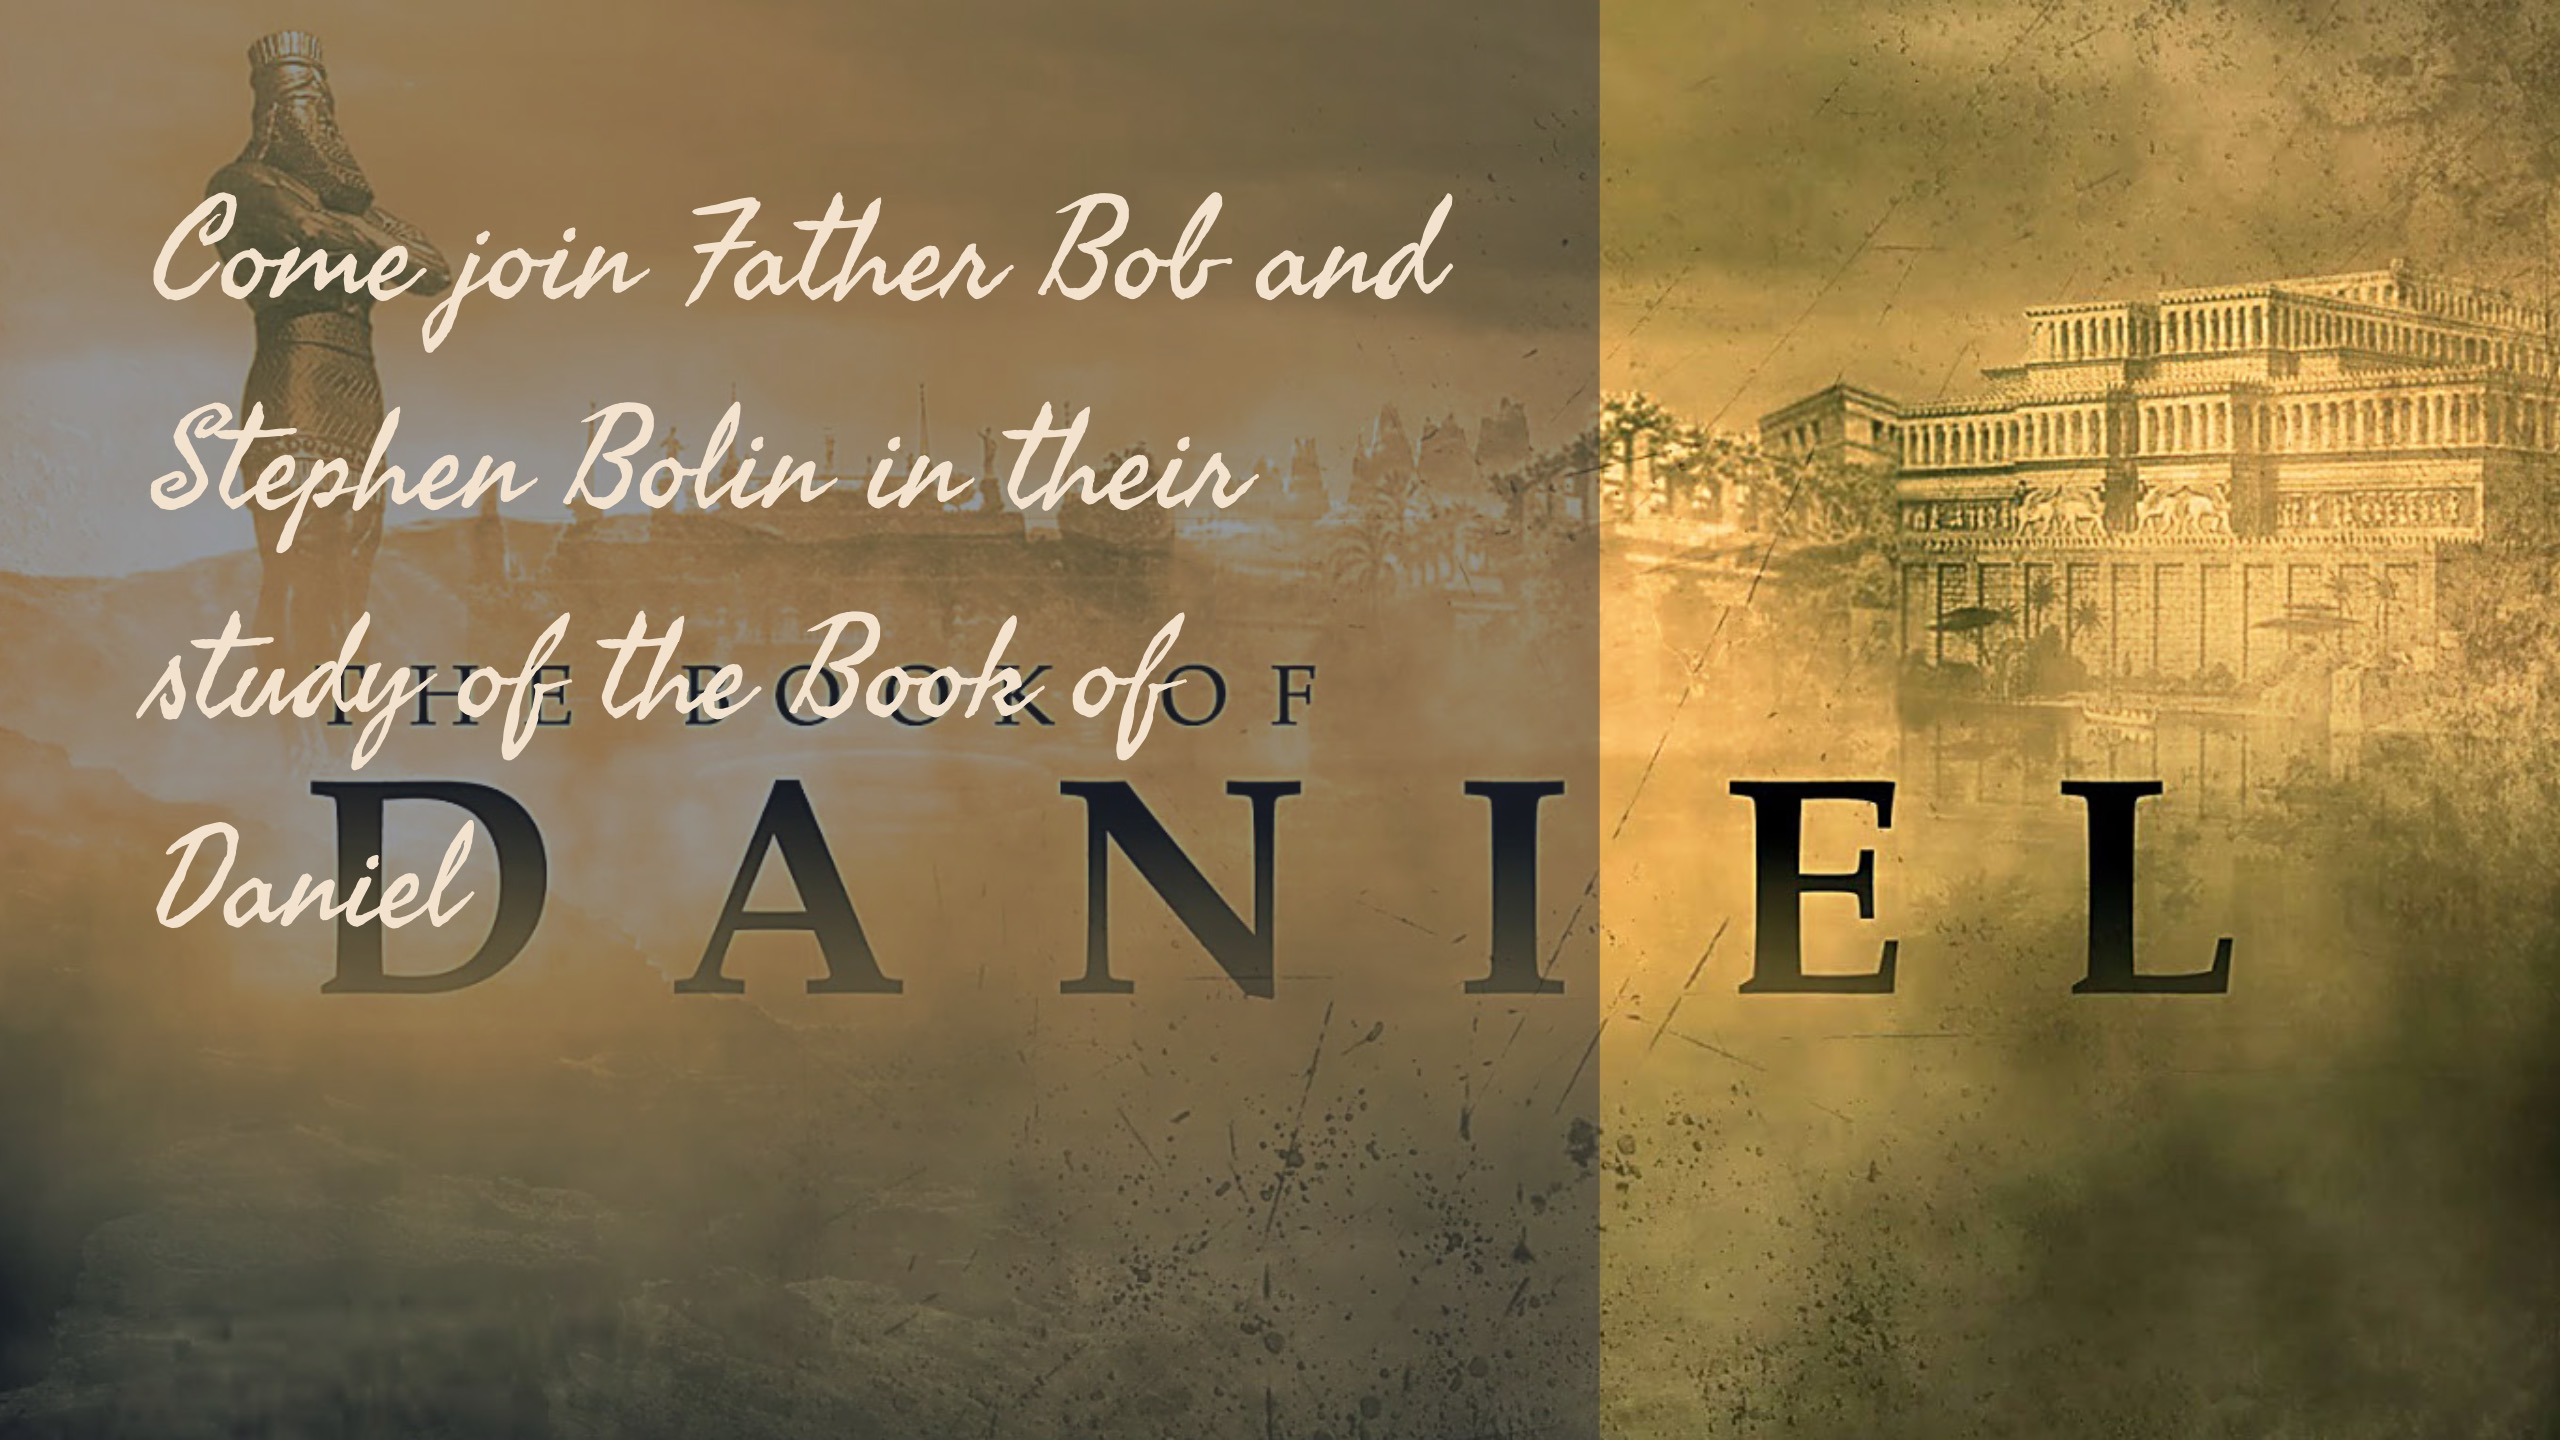 Come join Father Bob and Stephen Bolin in their study of the Book of Daniel. Learn the importance of this book as it has affected history and points of the future coming of Christ. Enjoy learning how to be